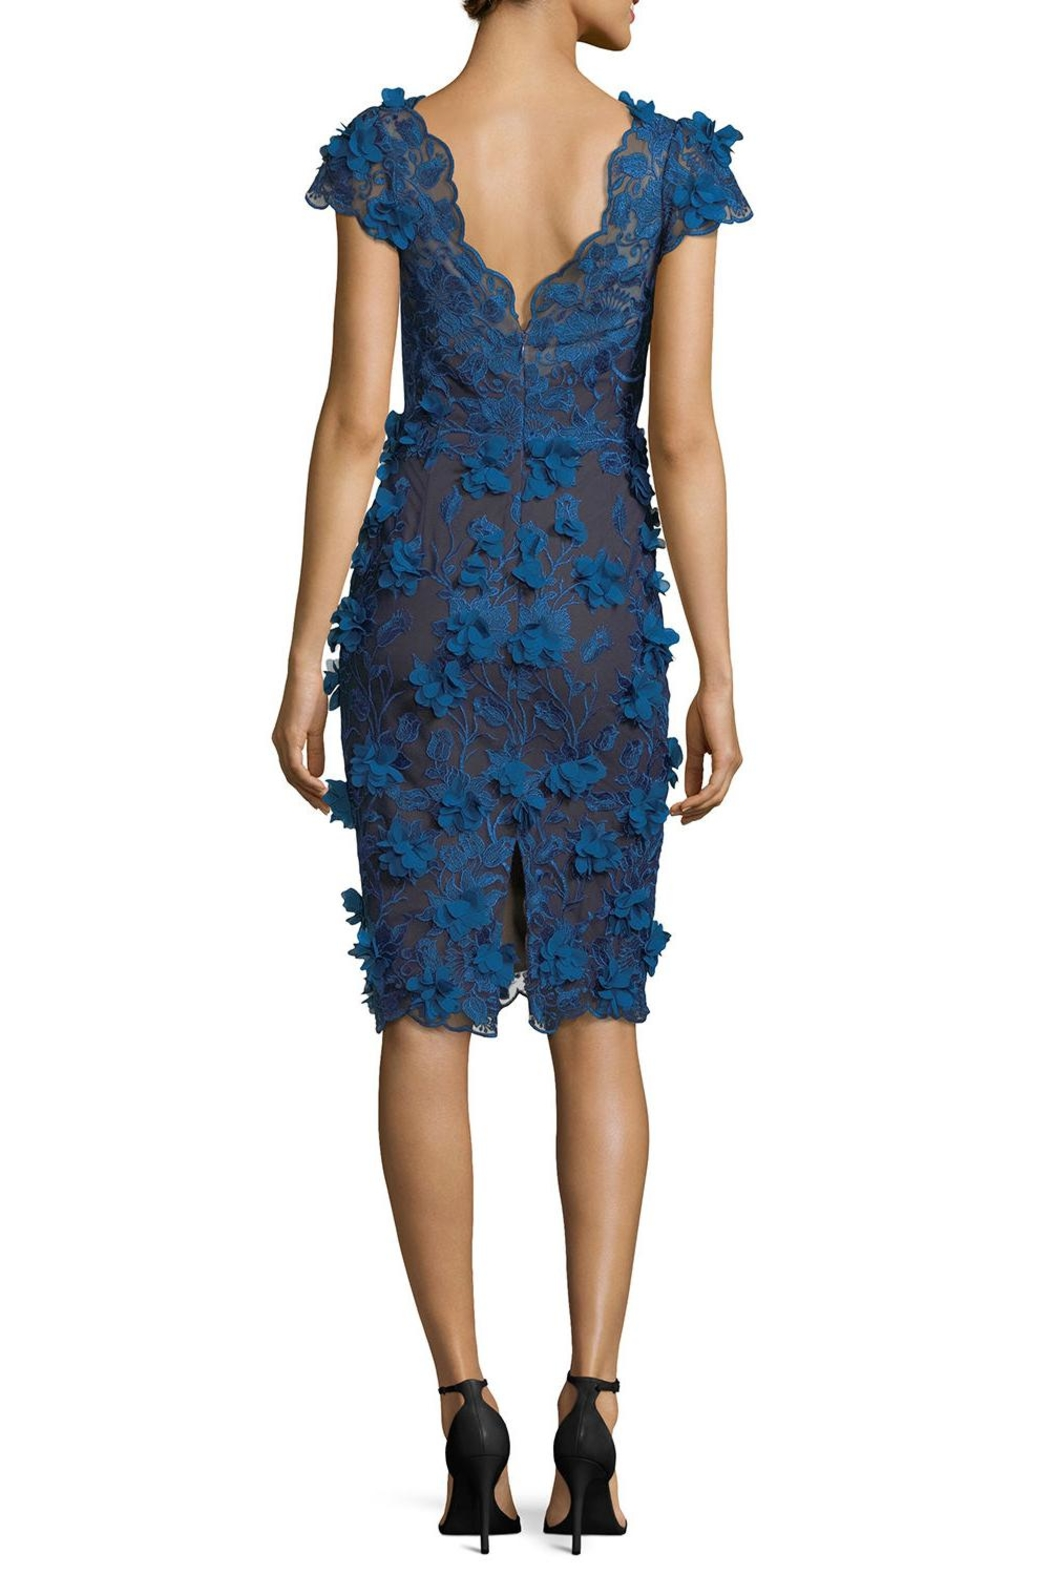 Notte by Marchesa Cocktail Dress - Front Full Image